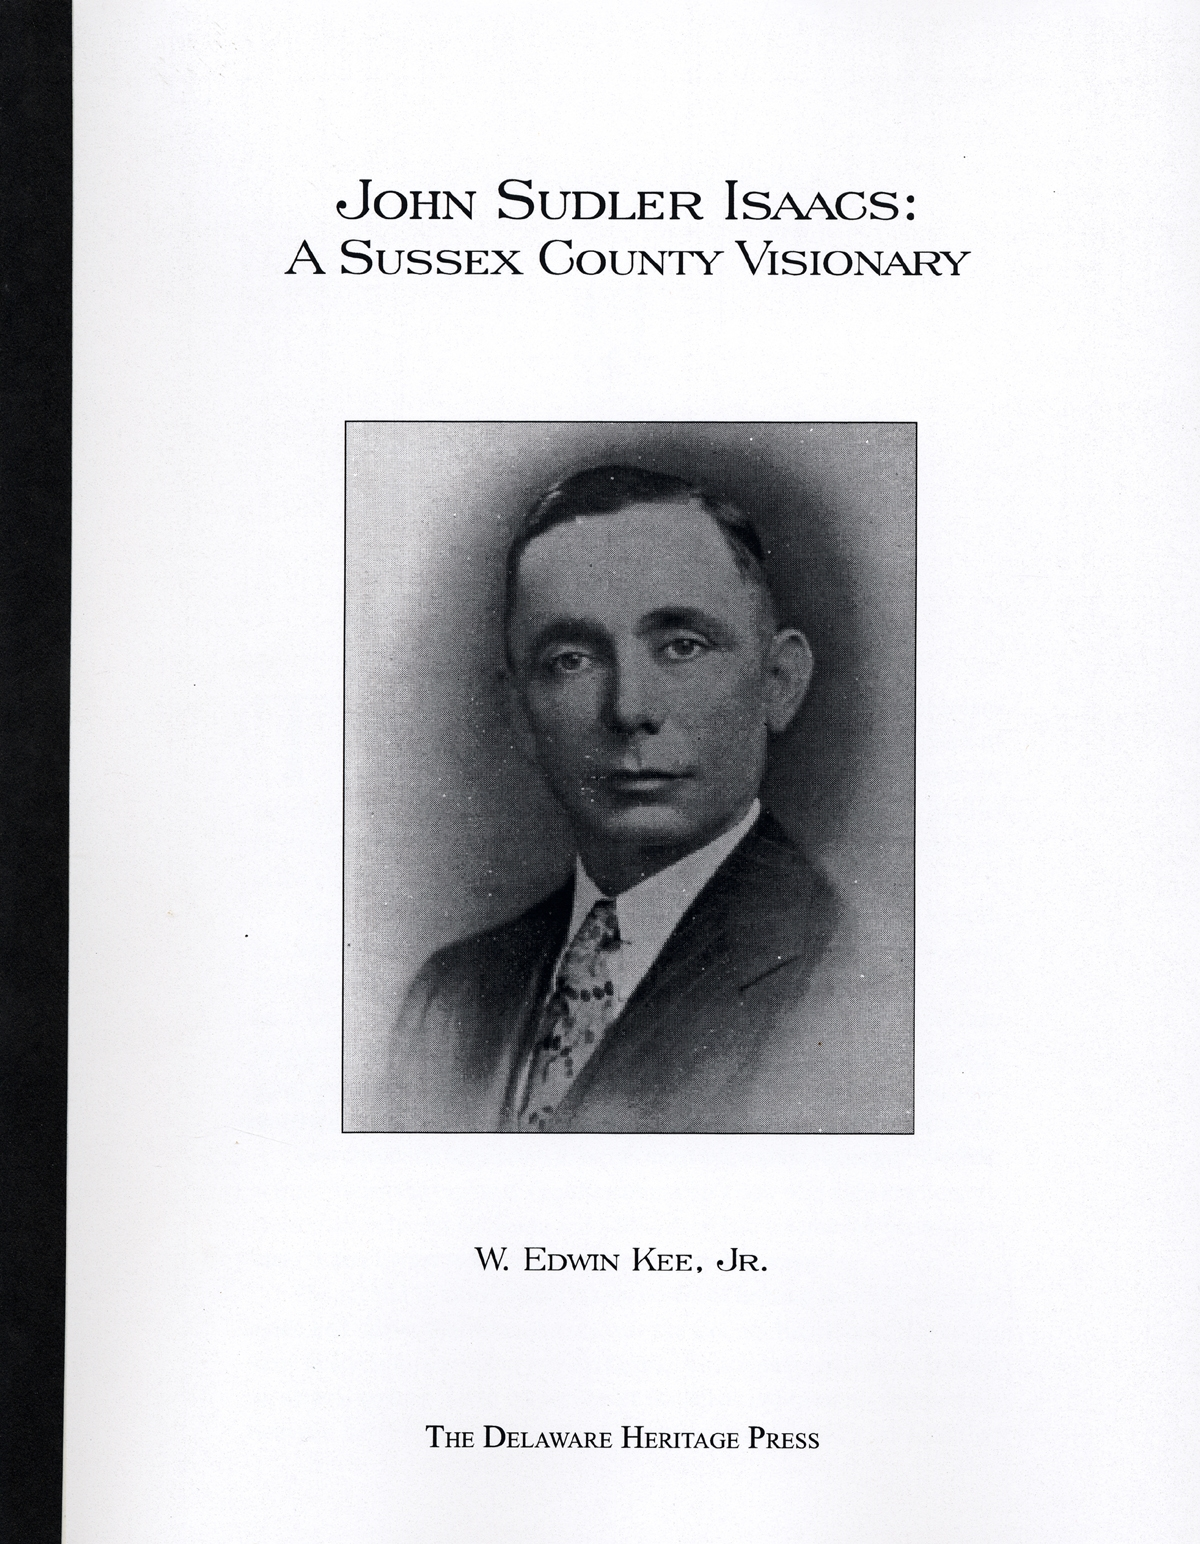 John Sudler Isaacs: A Sussex County Visionary, by W. Edwin Kee, Jr., 2009, 85 pp. Prices reflect the cost of the book PLUS S&H fee of $3.00.